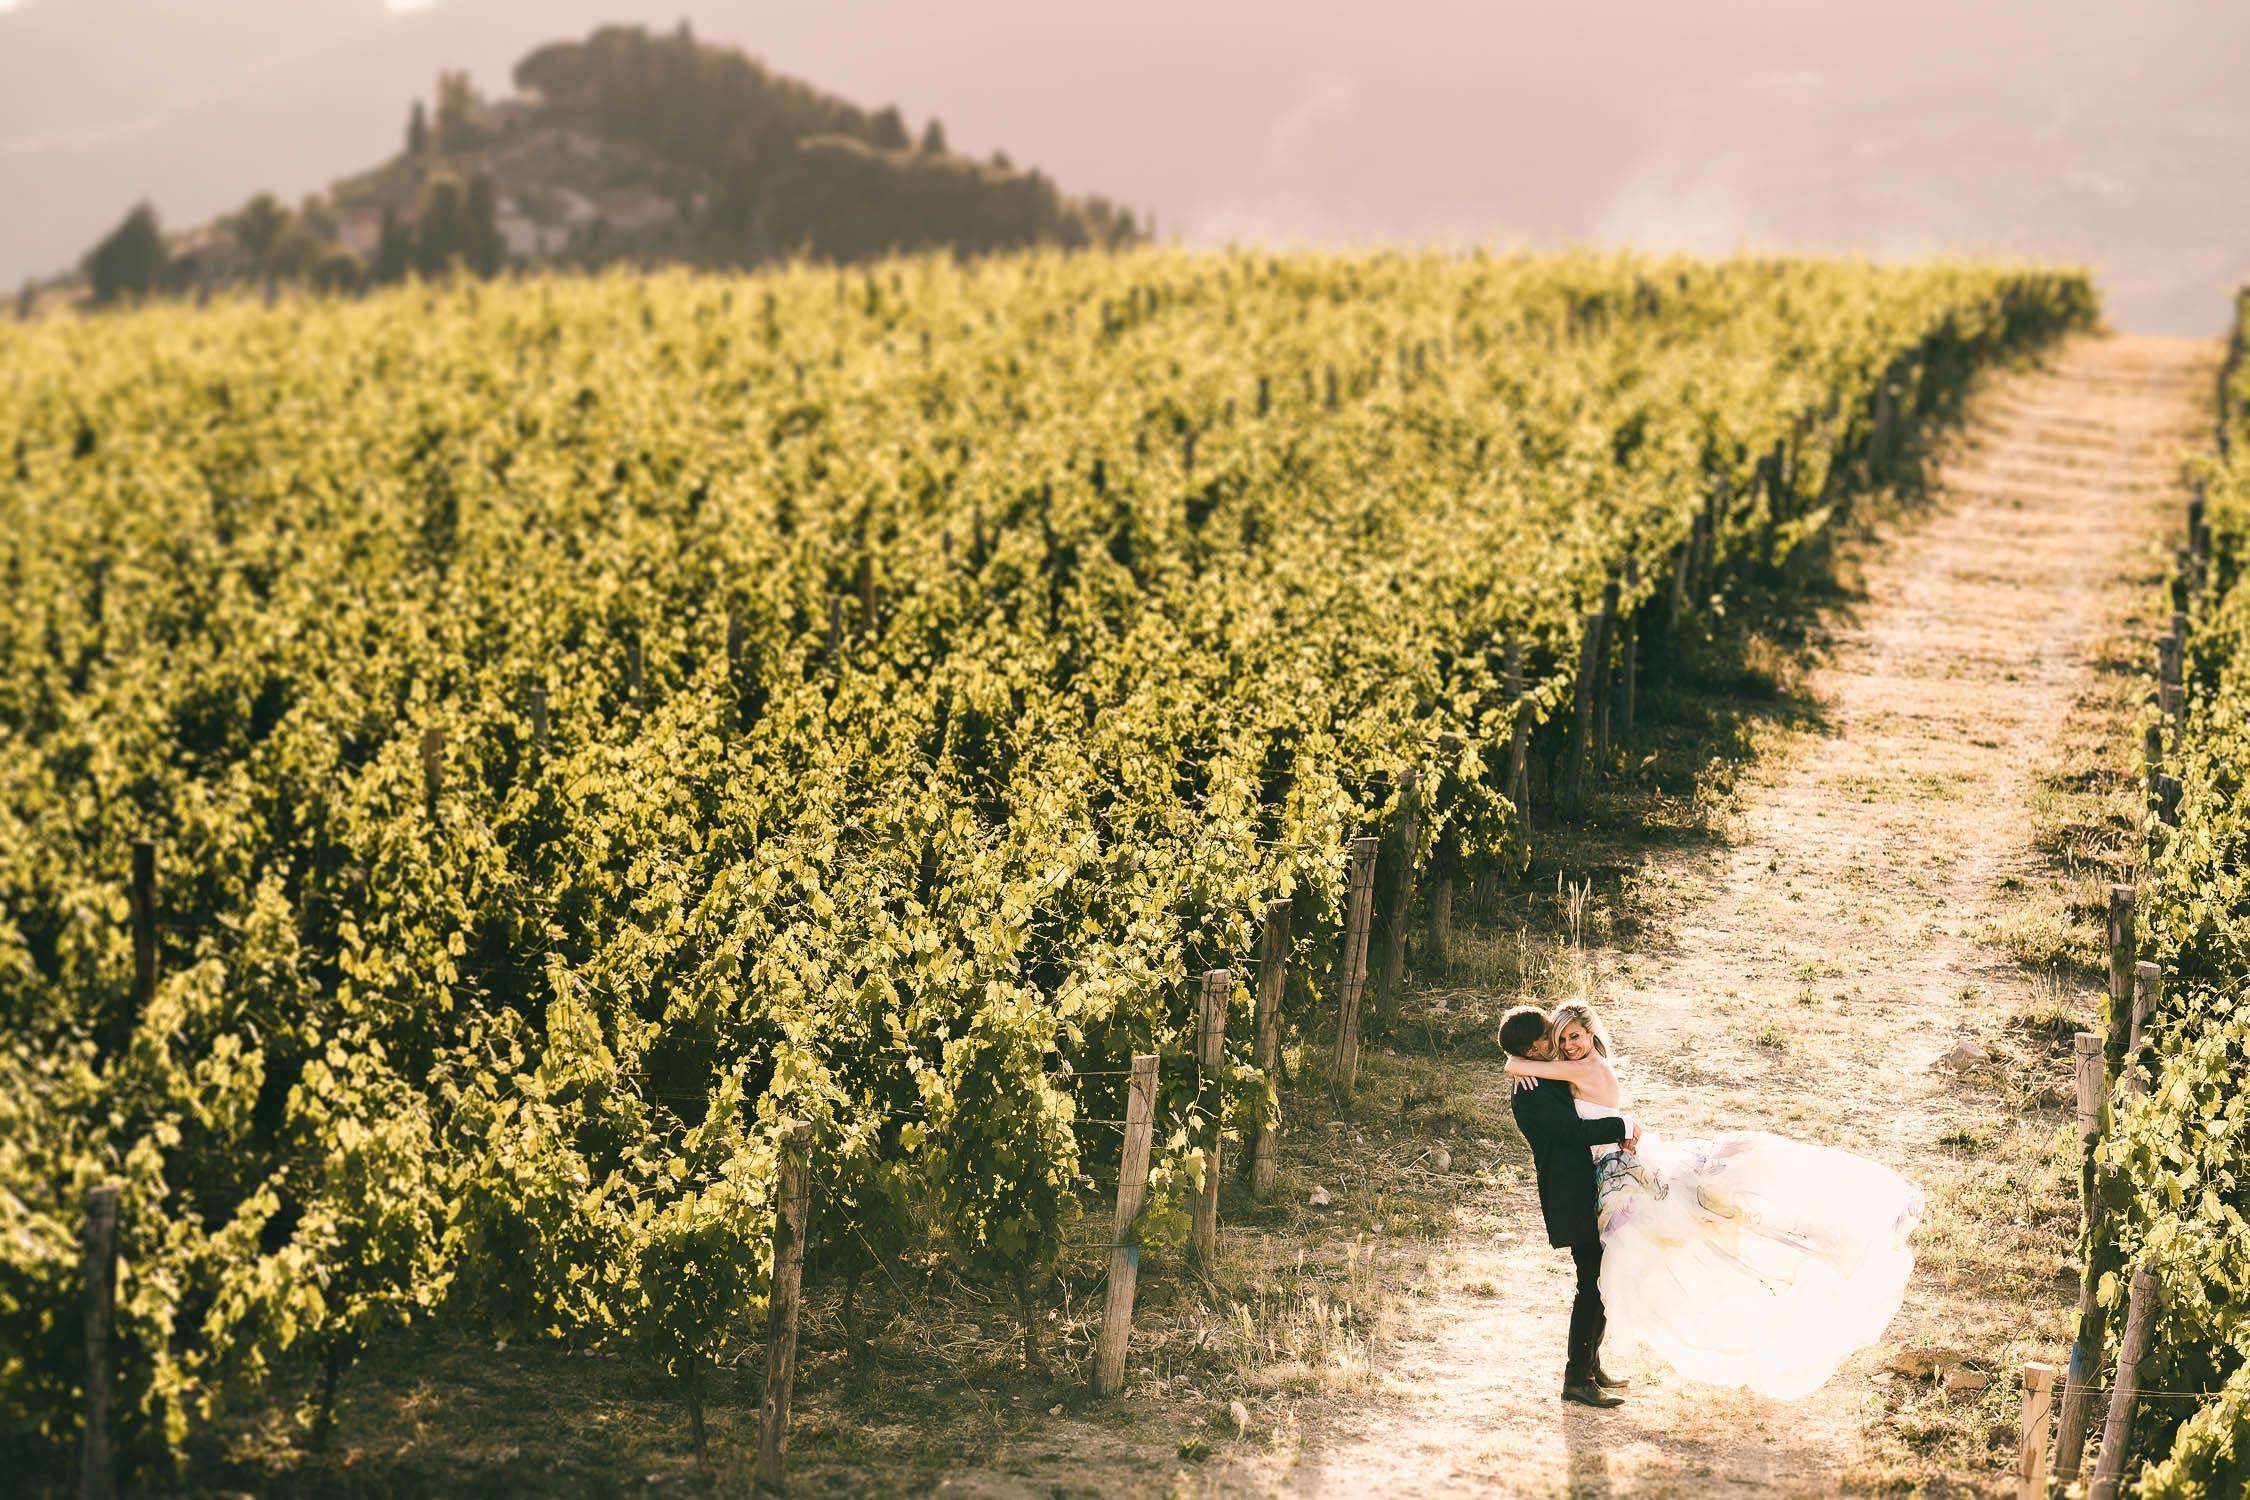 Lovely and elegant bride and groom photo into Tuscany vineyard in the countryside